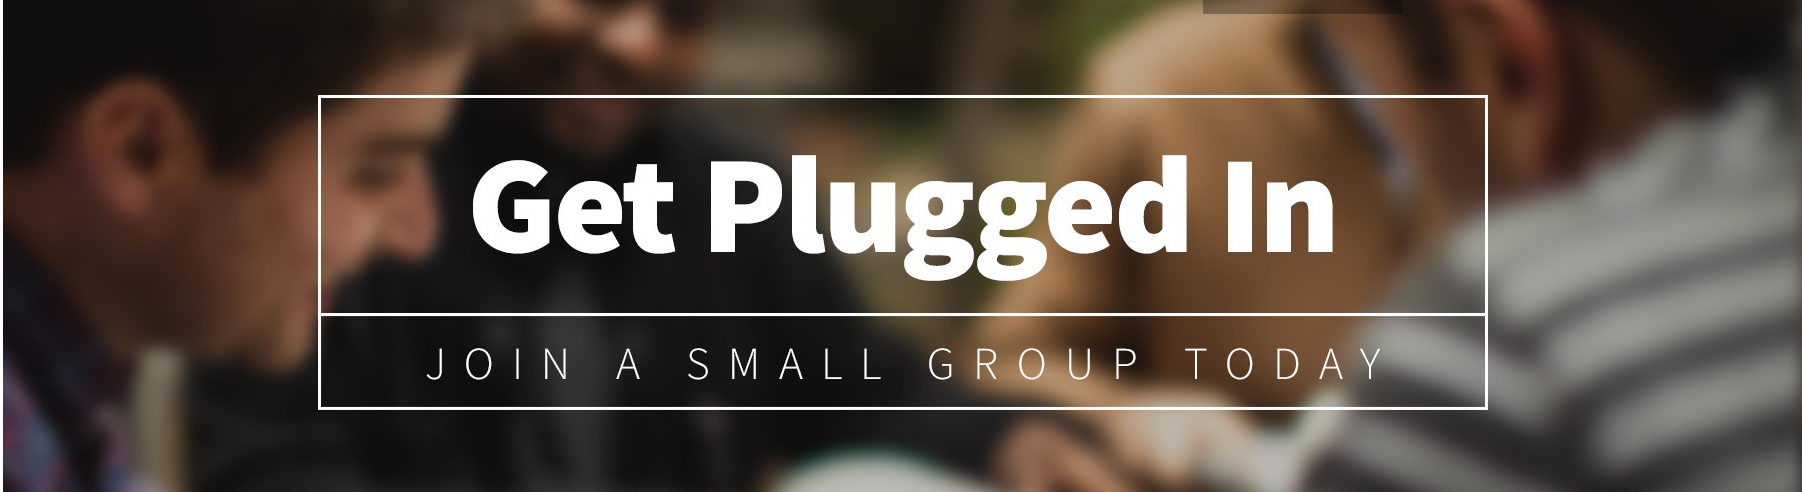 Get plugged in join a small group